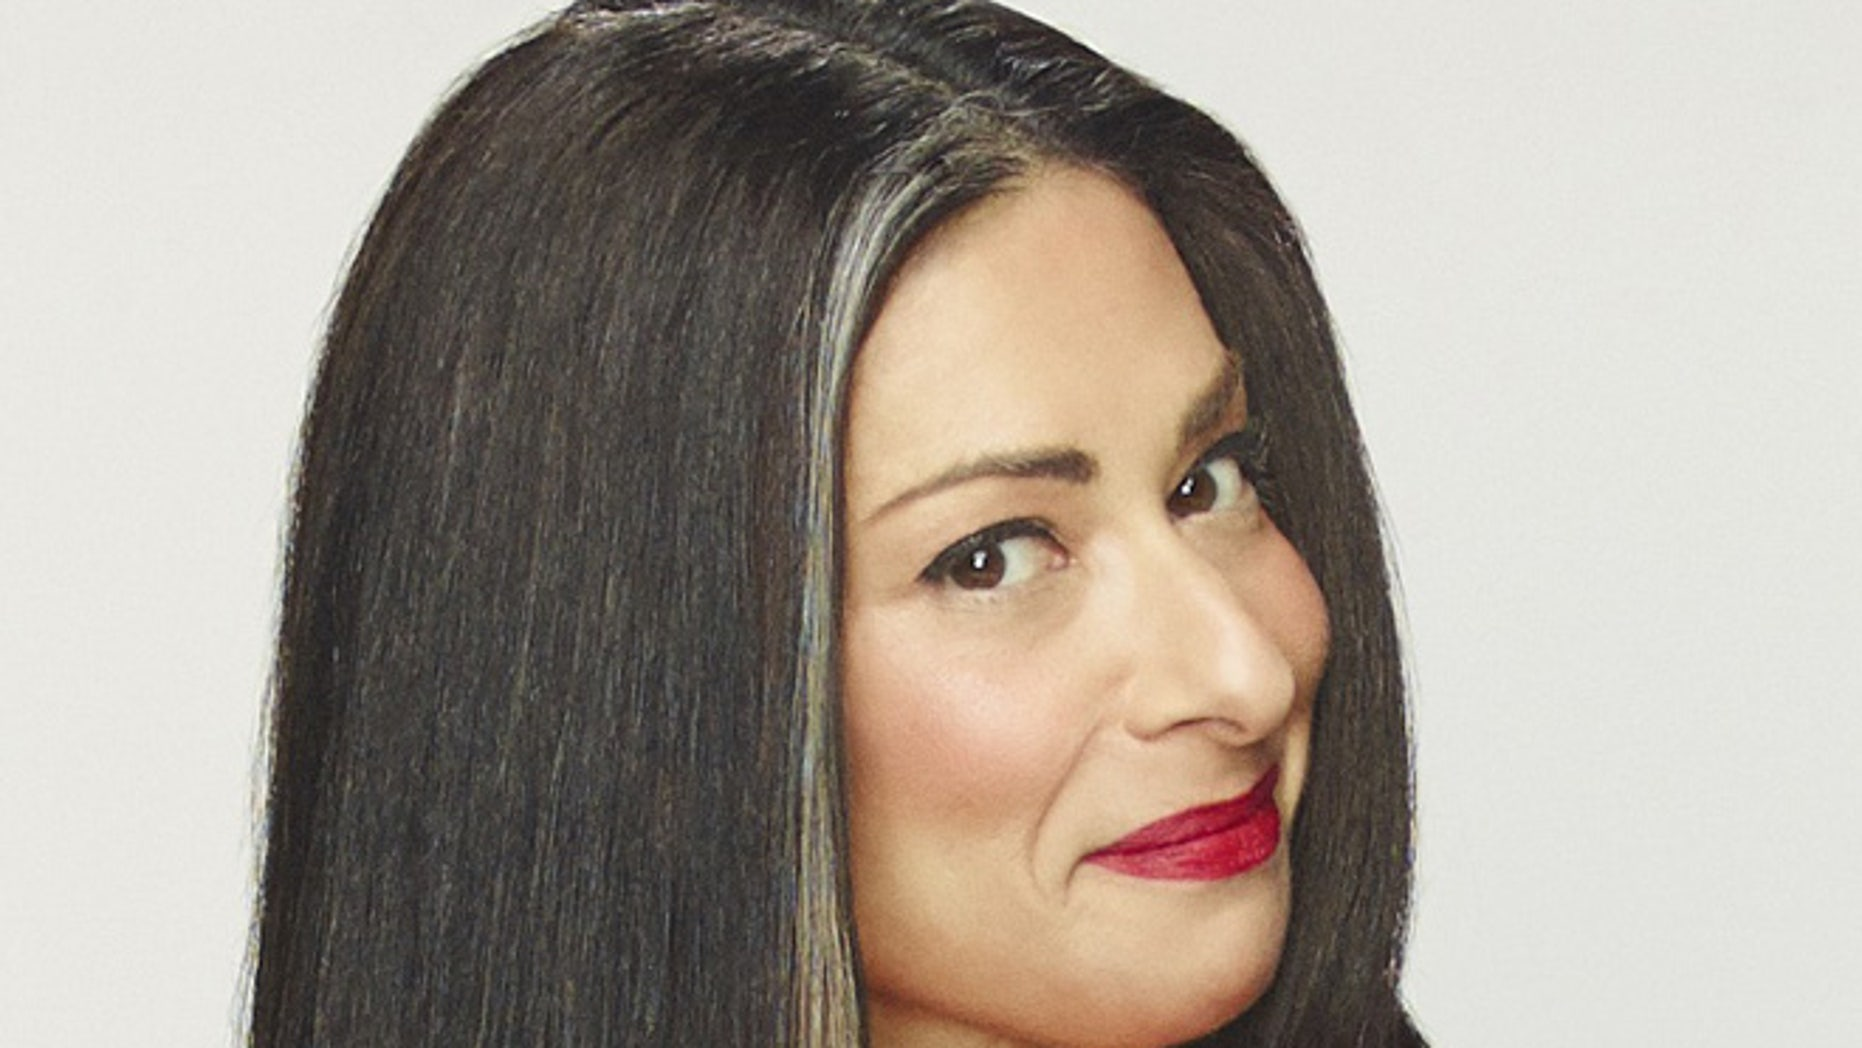 Fashion guru Stacy London knows a thing or two about packing for a variety of trips.